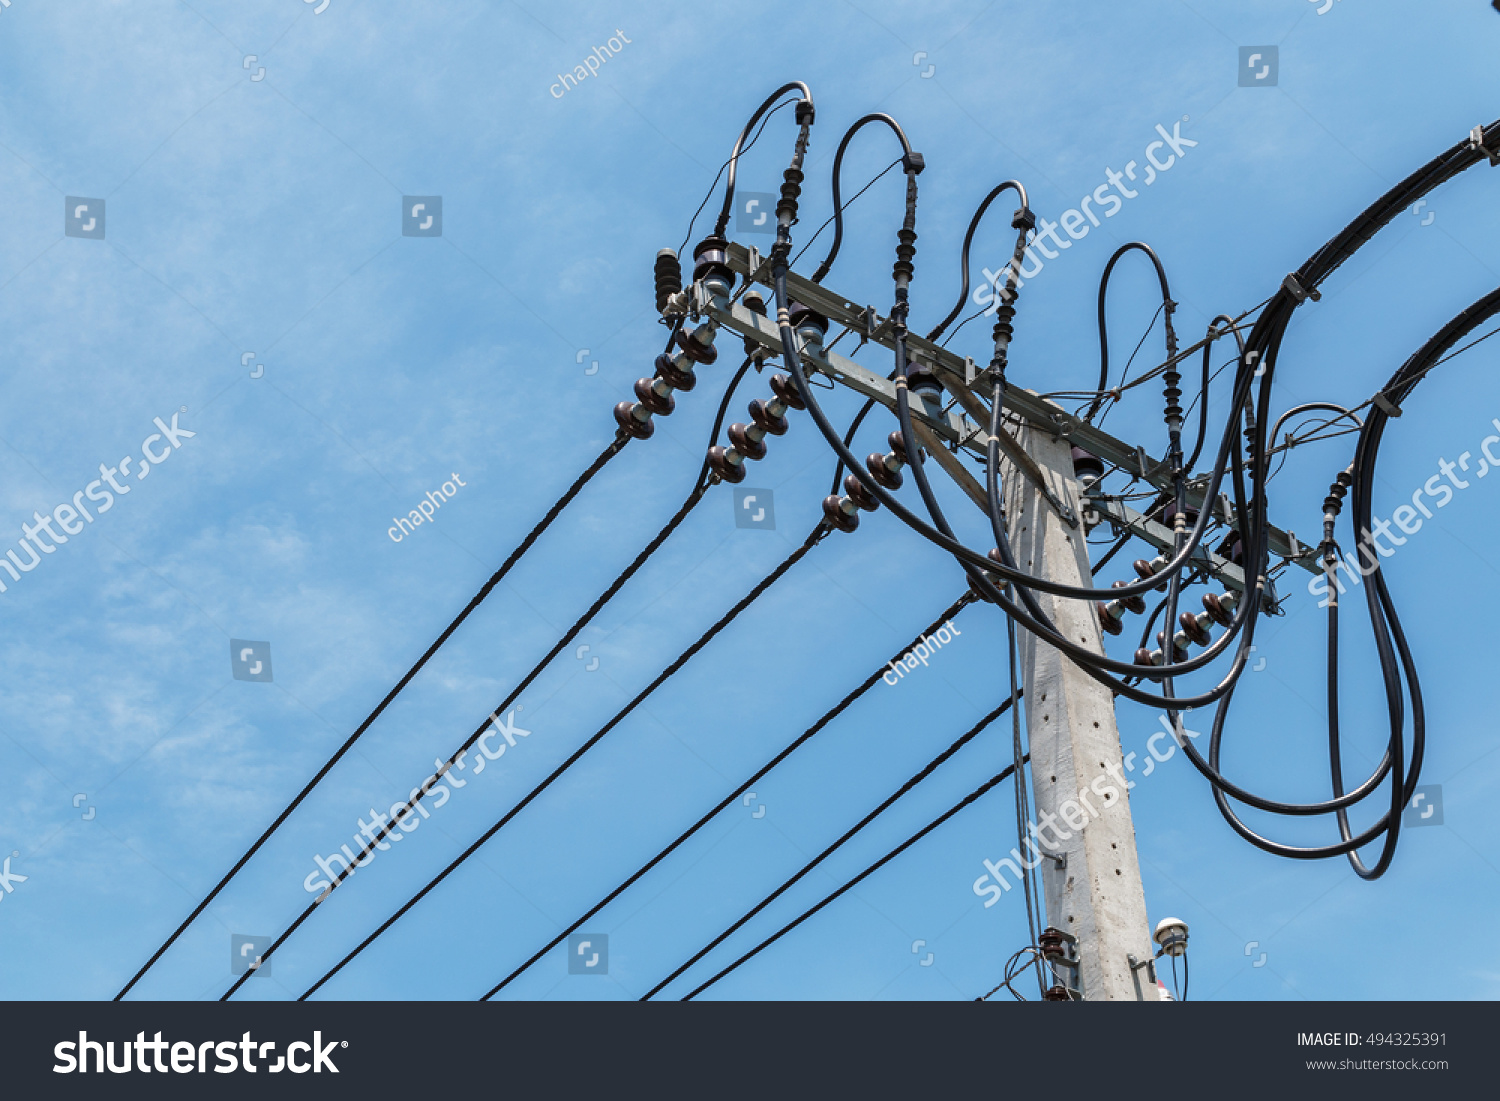 hight resolution of high voltage wires on a light pole